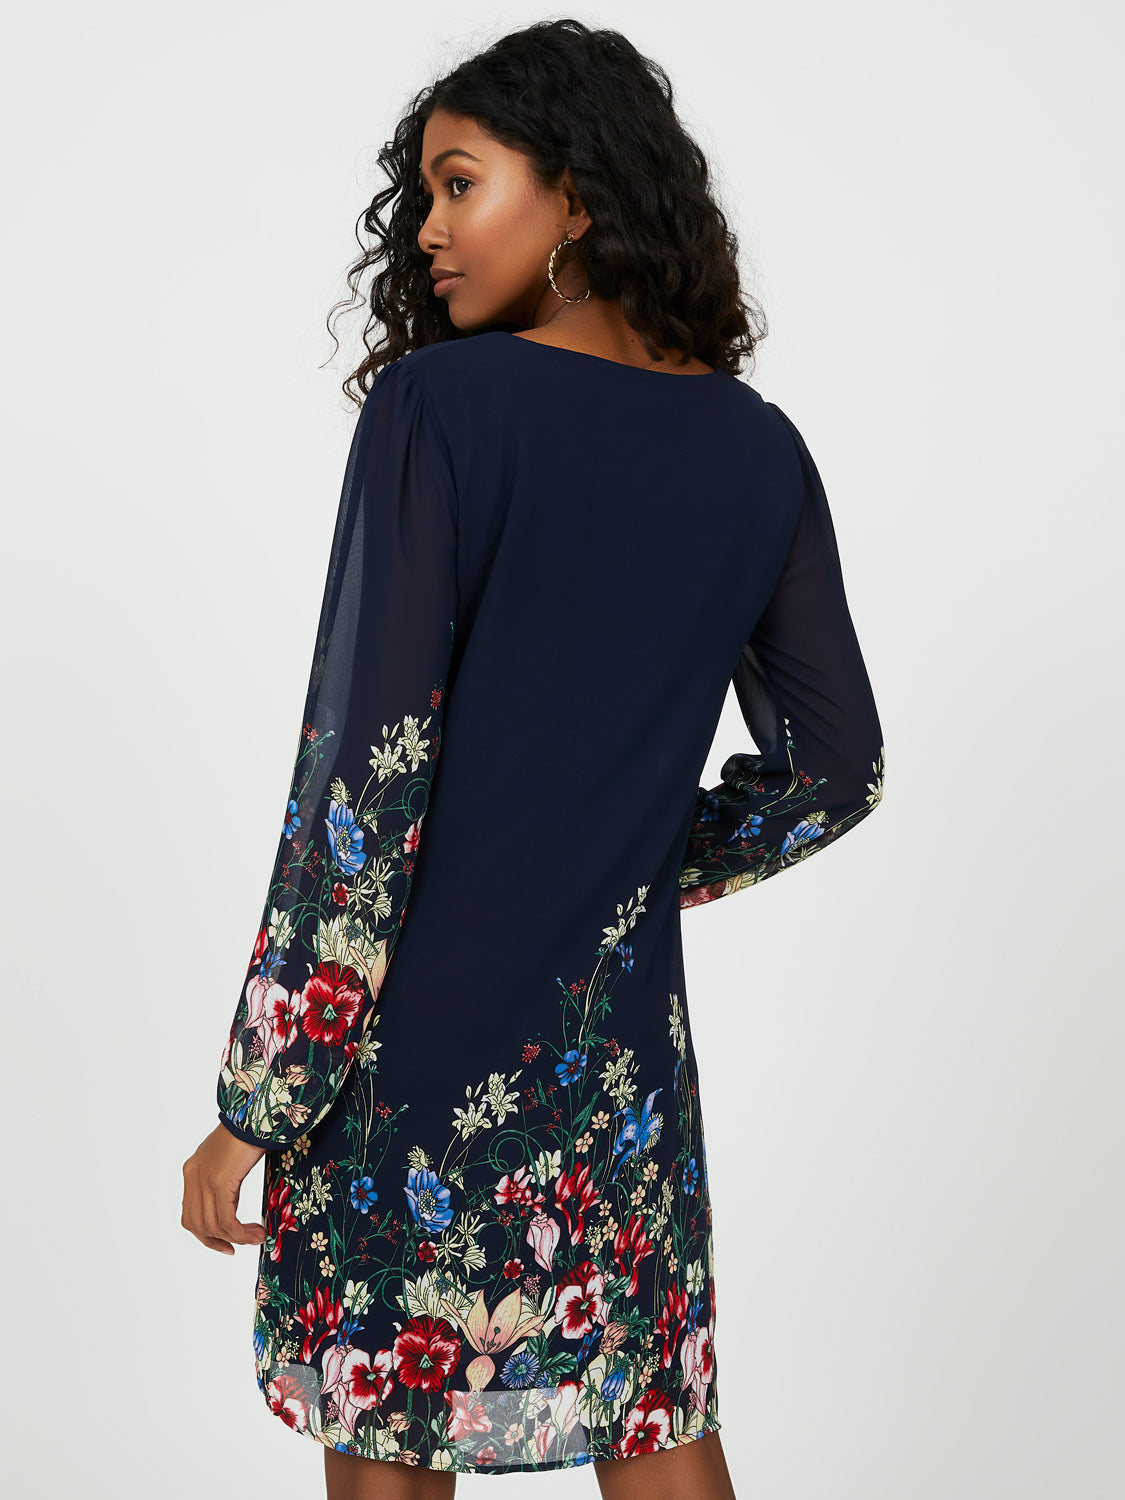 Balloon Sleeve Floral Dress